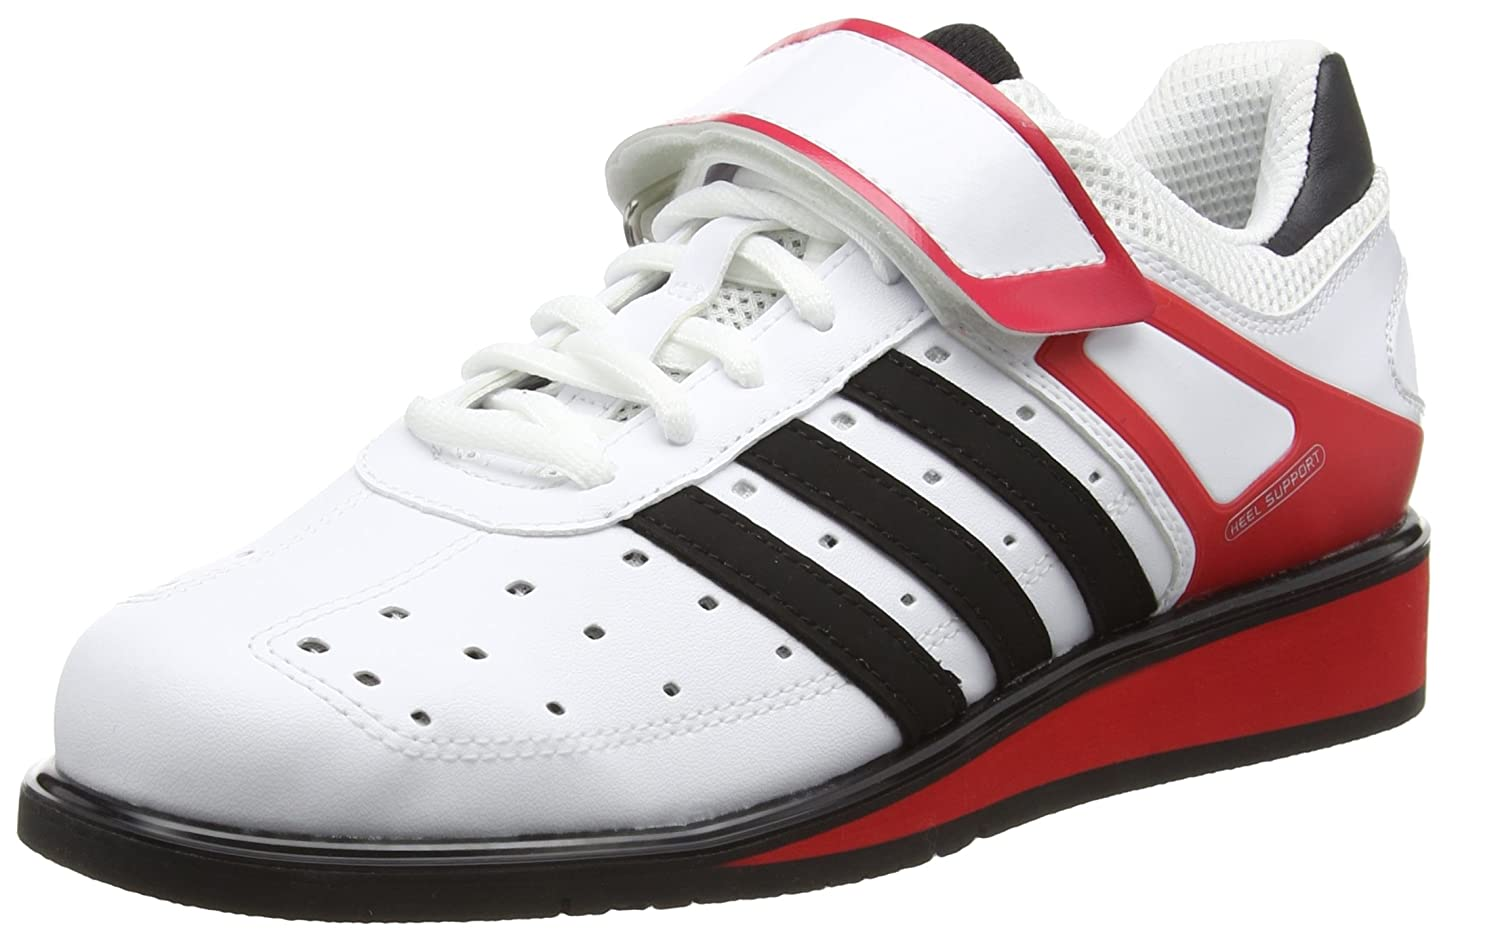 Adidas Power Perfect II, Zapatillas Deportivas para Interior, Unisex Adulto 48 EU|Multicolor (Running White Ftw/Black /Radiant Red )